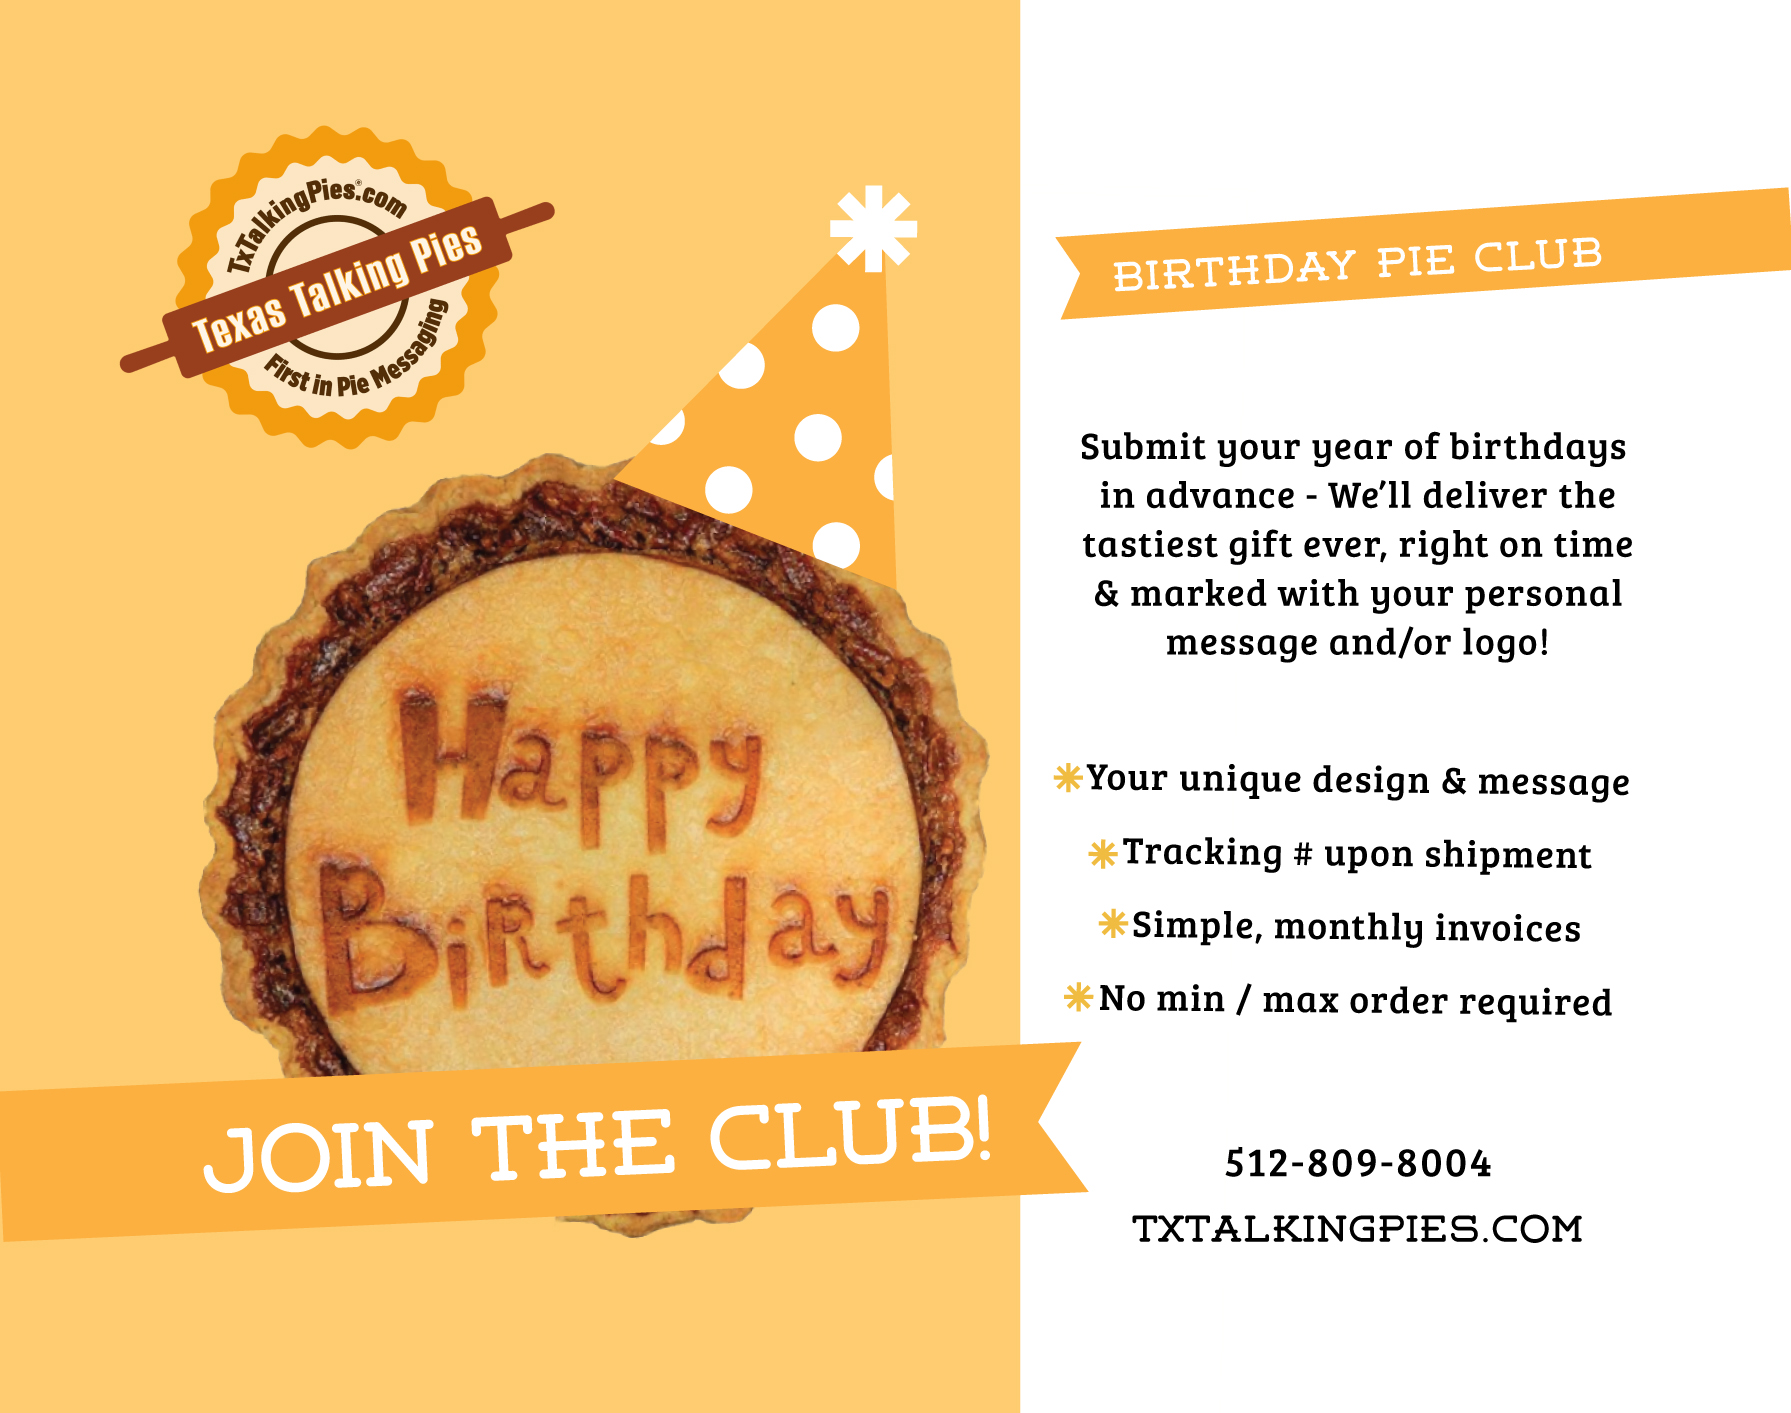 Birthday Club-2.jpg